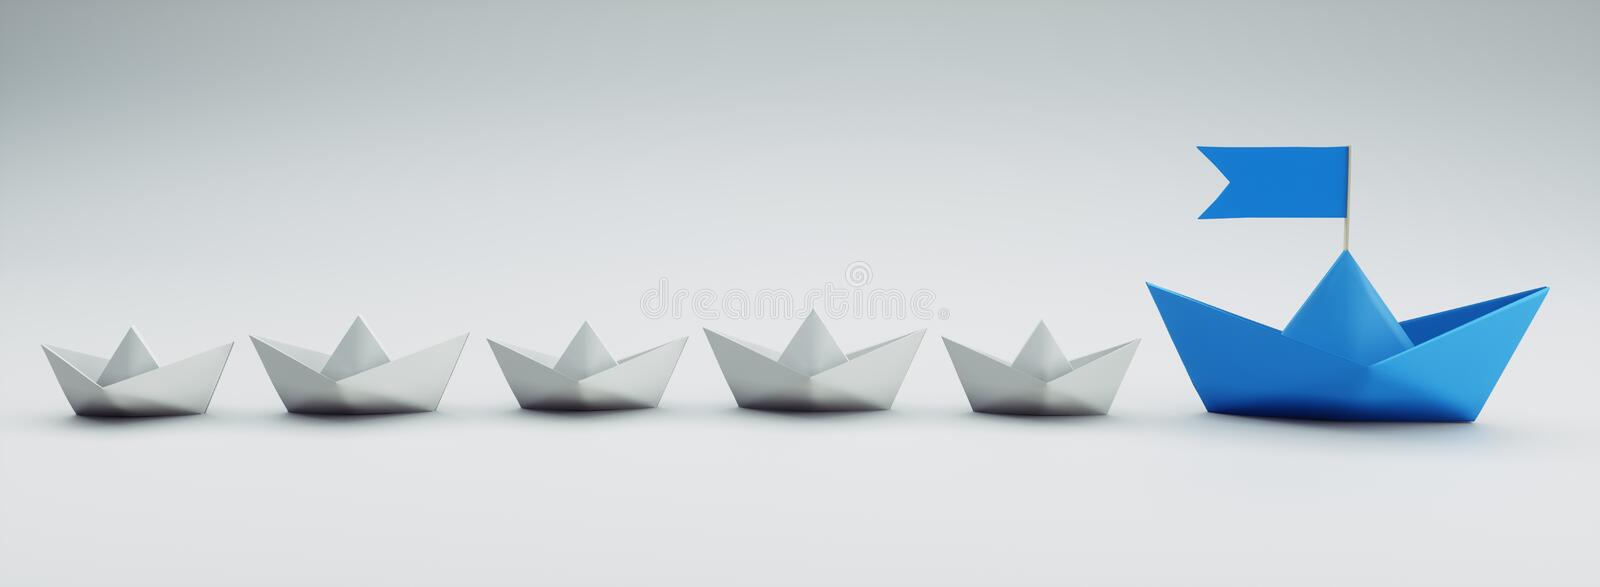 Group of white and blue paper boats - 3D illustration stock illustration